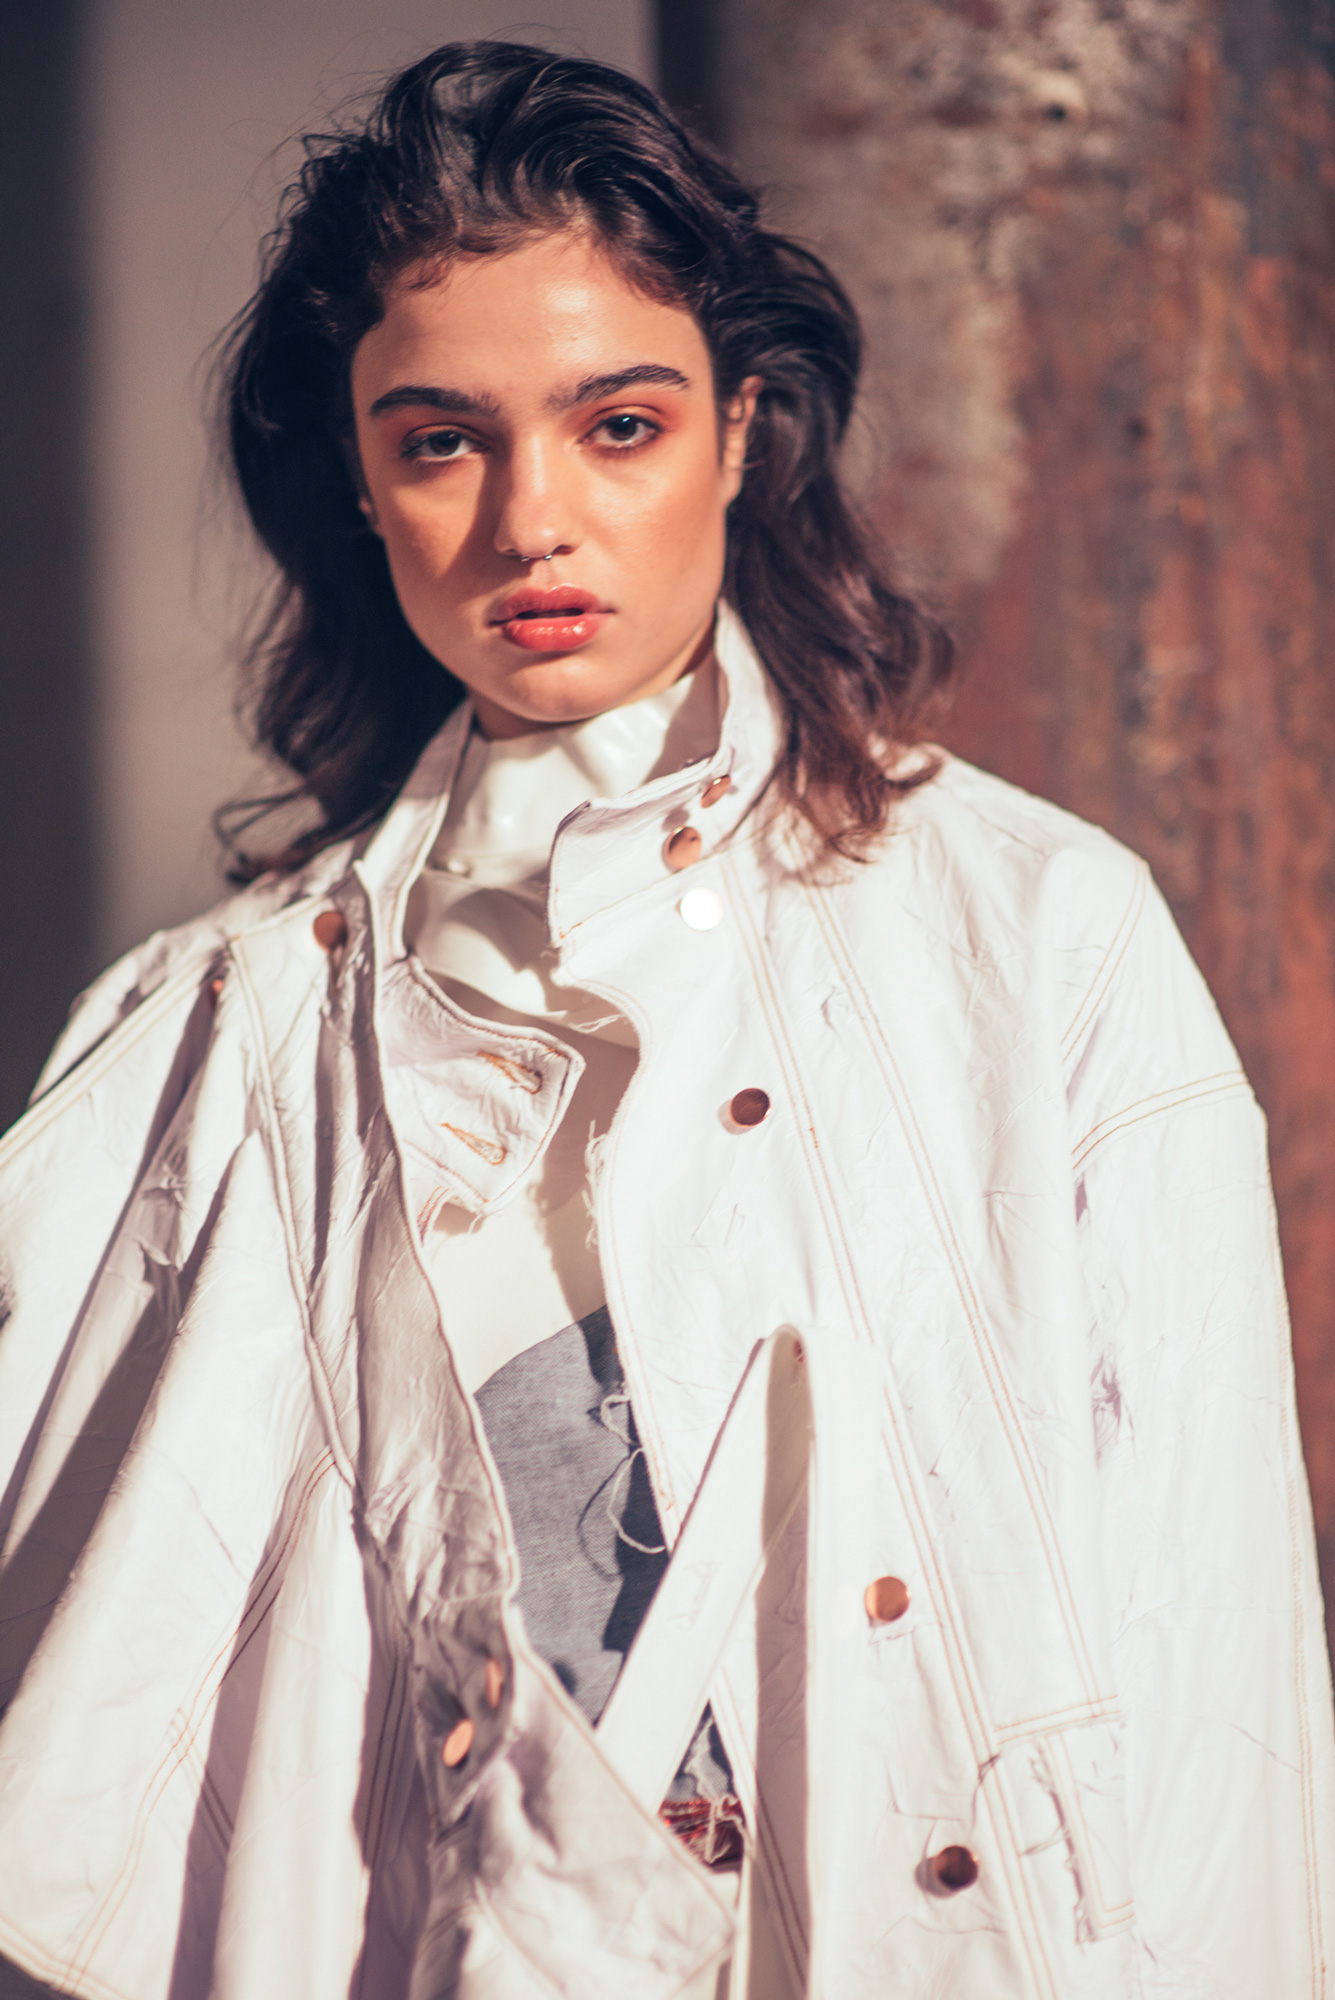 Ilana Davies backstage at Alissar H Resort 19 show with The Innovators MBFWA18